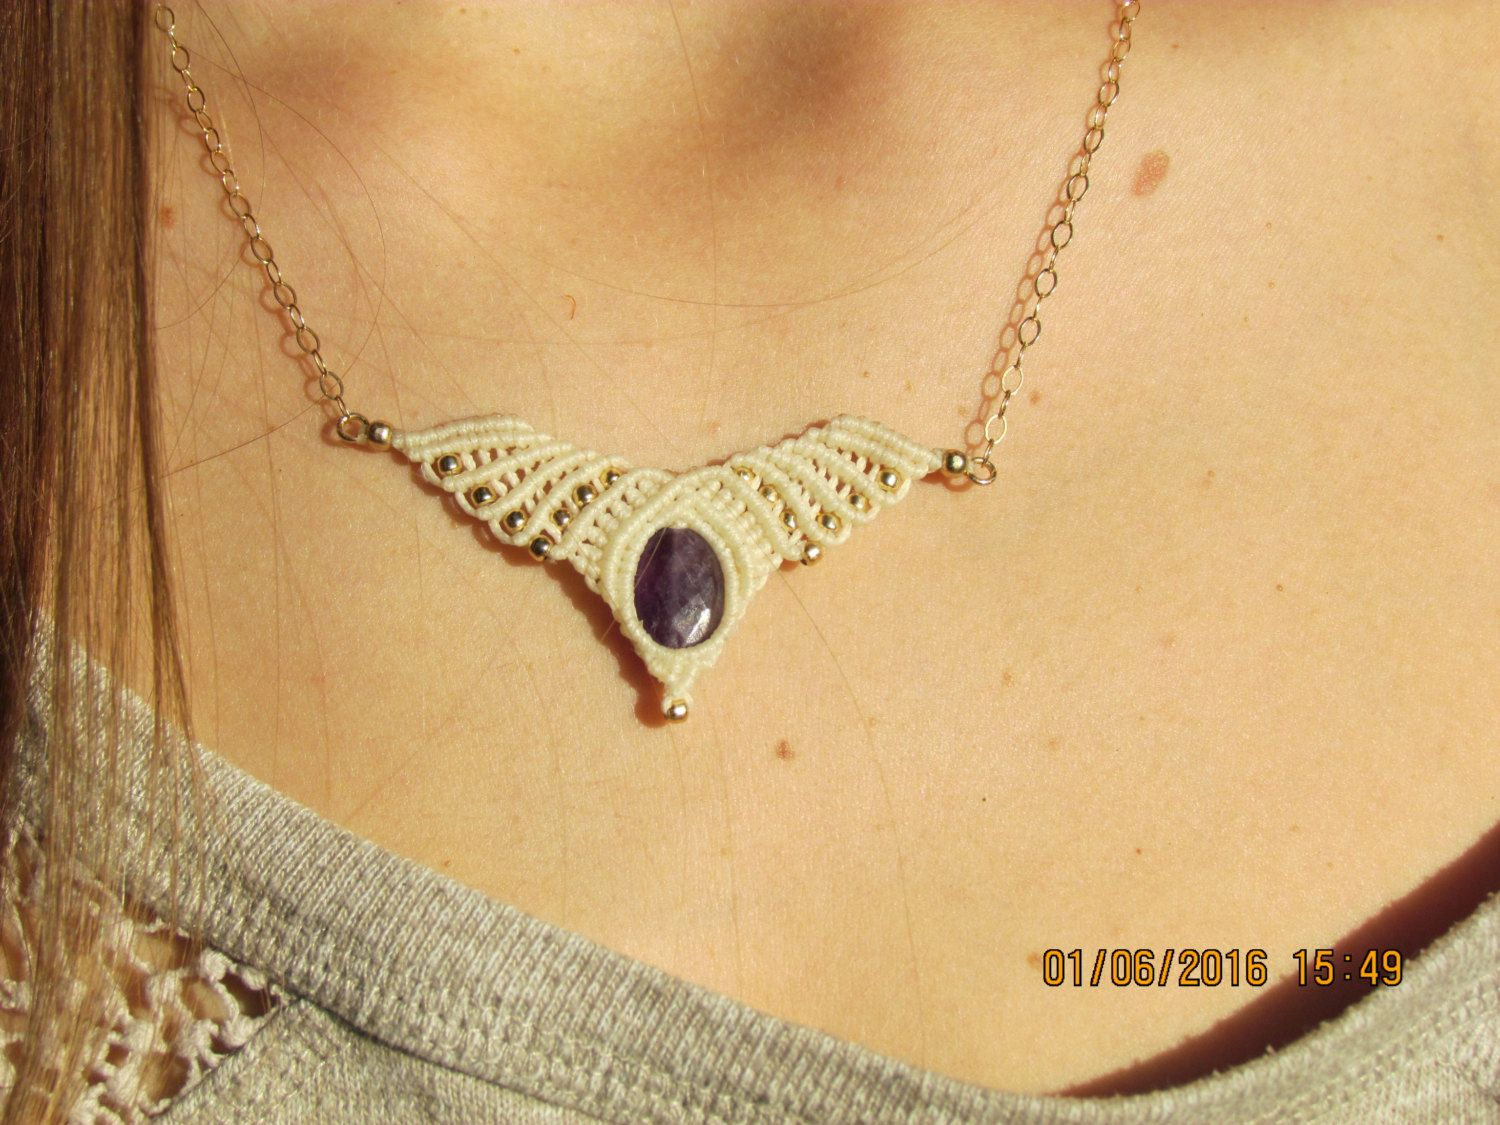 New to MacrameLoveJewelry on Etsy: Angel wings necklace labradorite necklace  tribal necklace macrame necklace collier en macramé gypsy necklace Pyrite charm (40.95 USD)